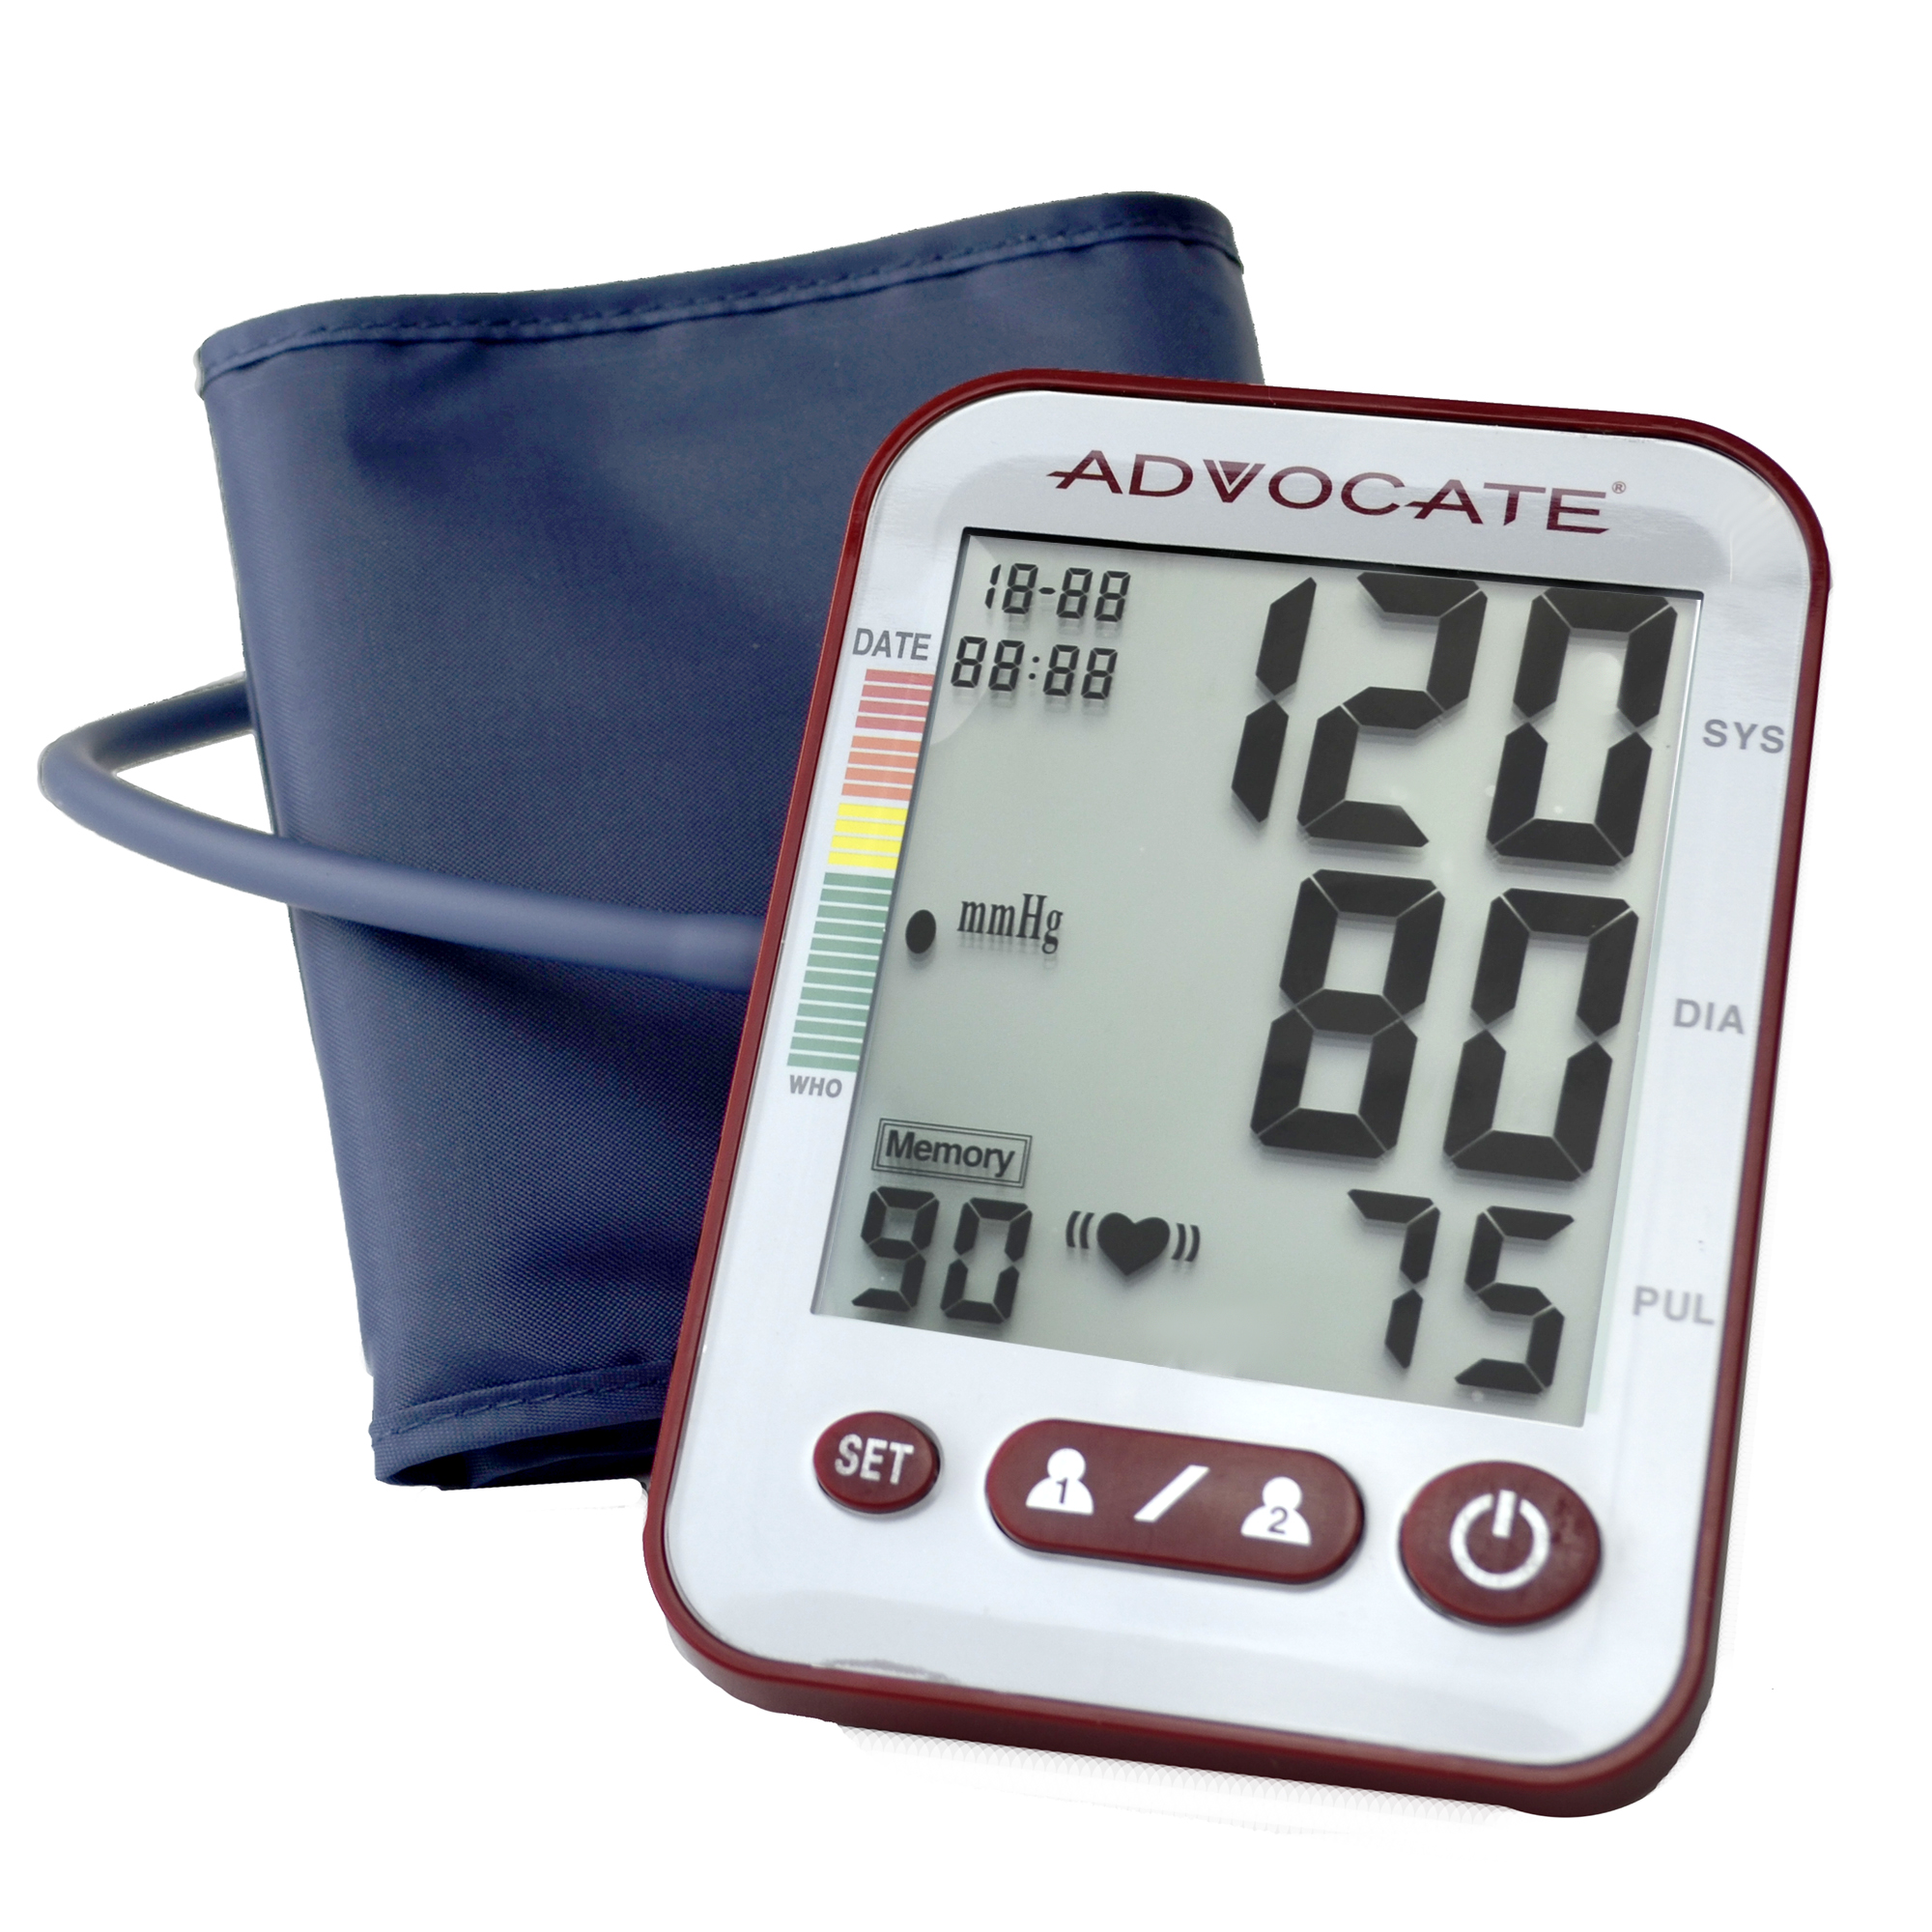 Best Blood Pressure Monitors Extra Large Cuffs - Advocate Upper Arm Blood Pressure Monitor Size Extra Review